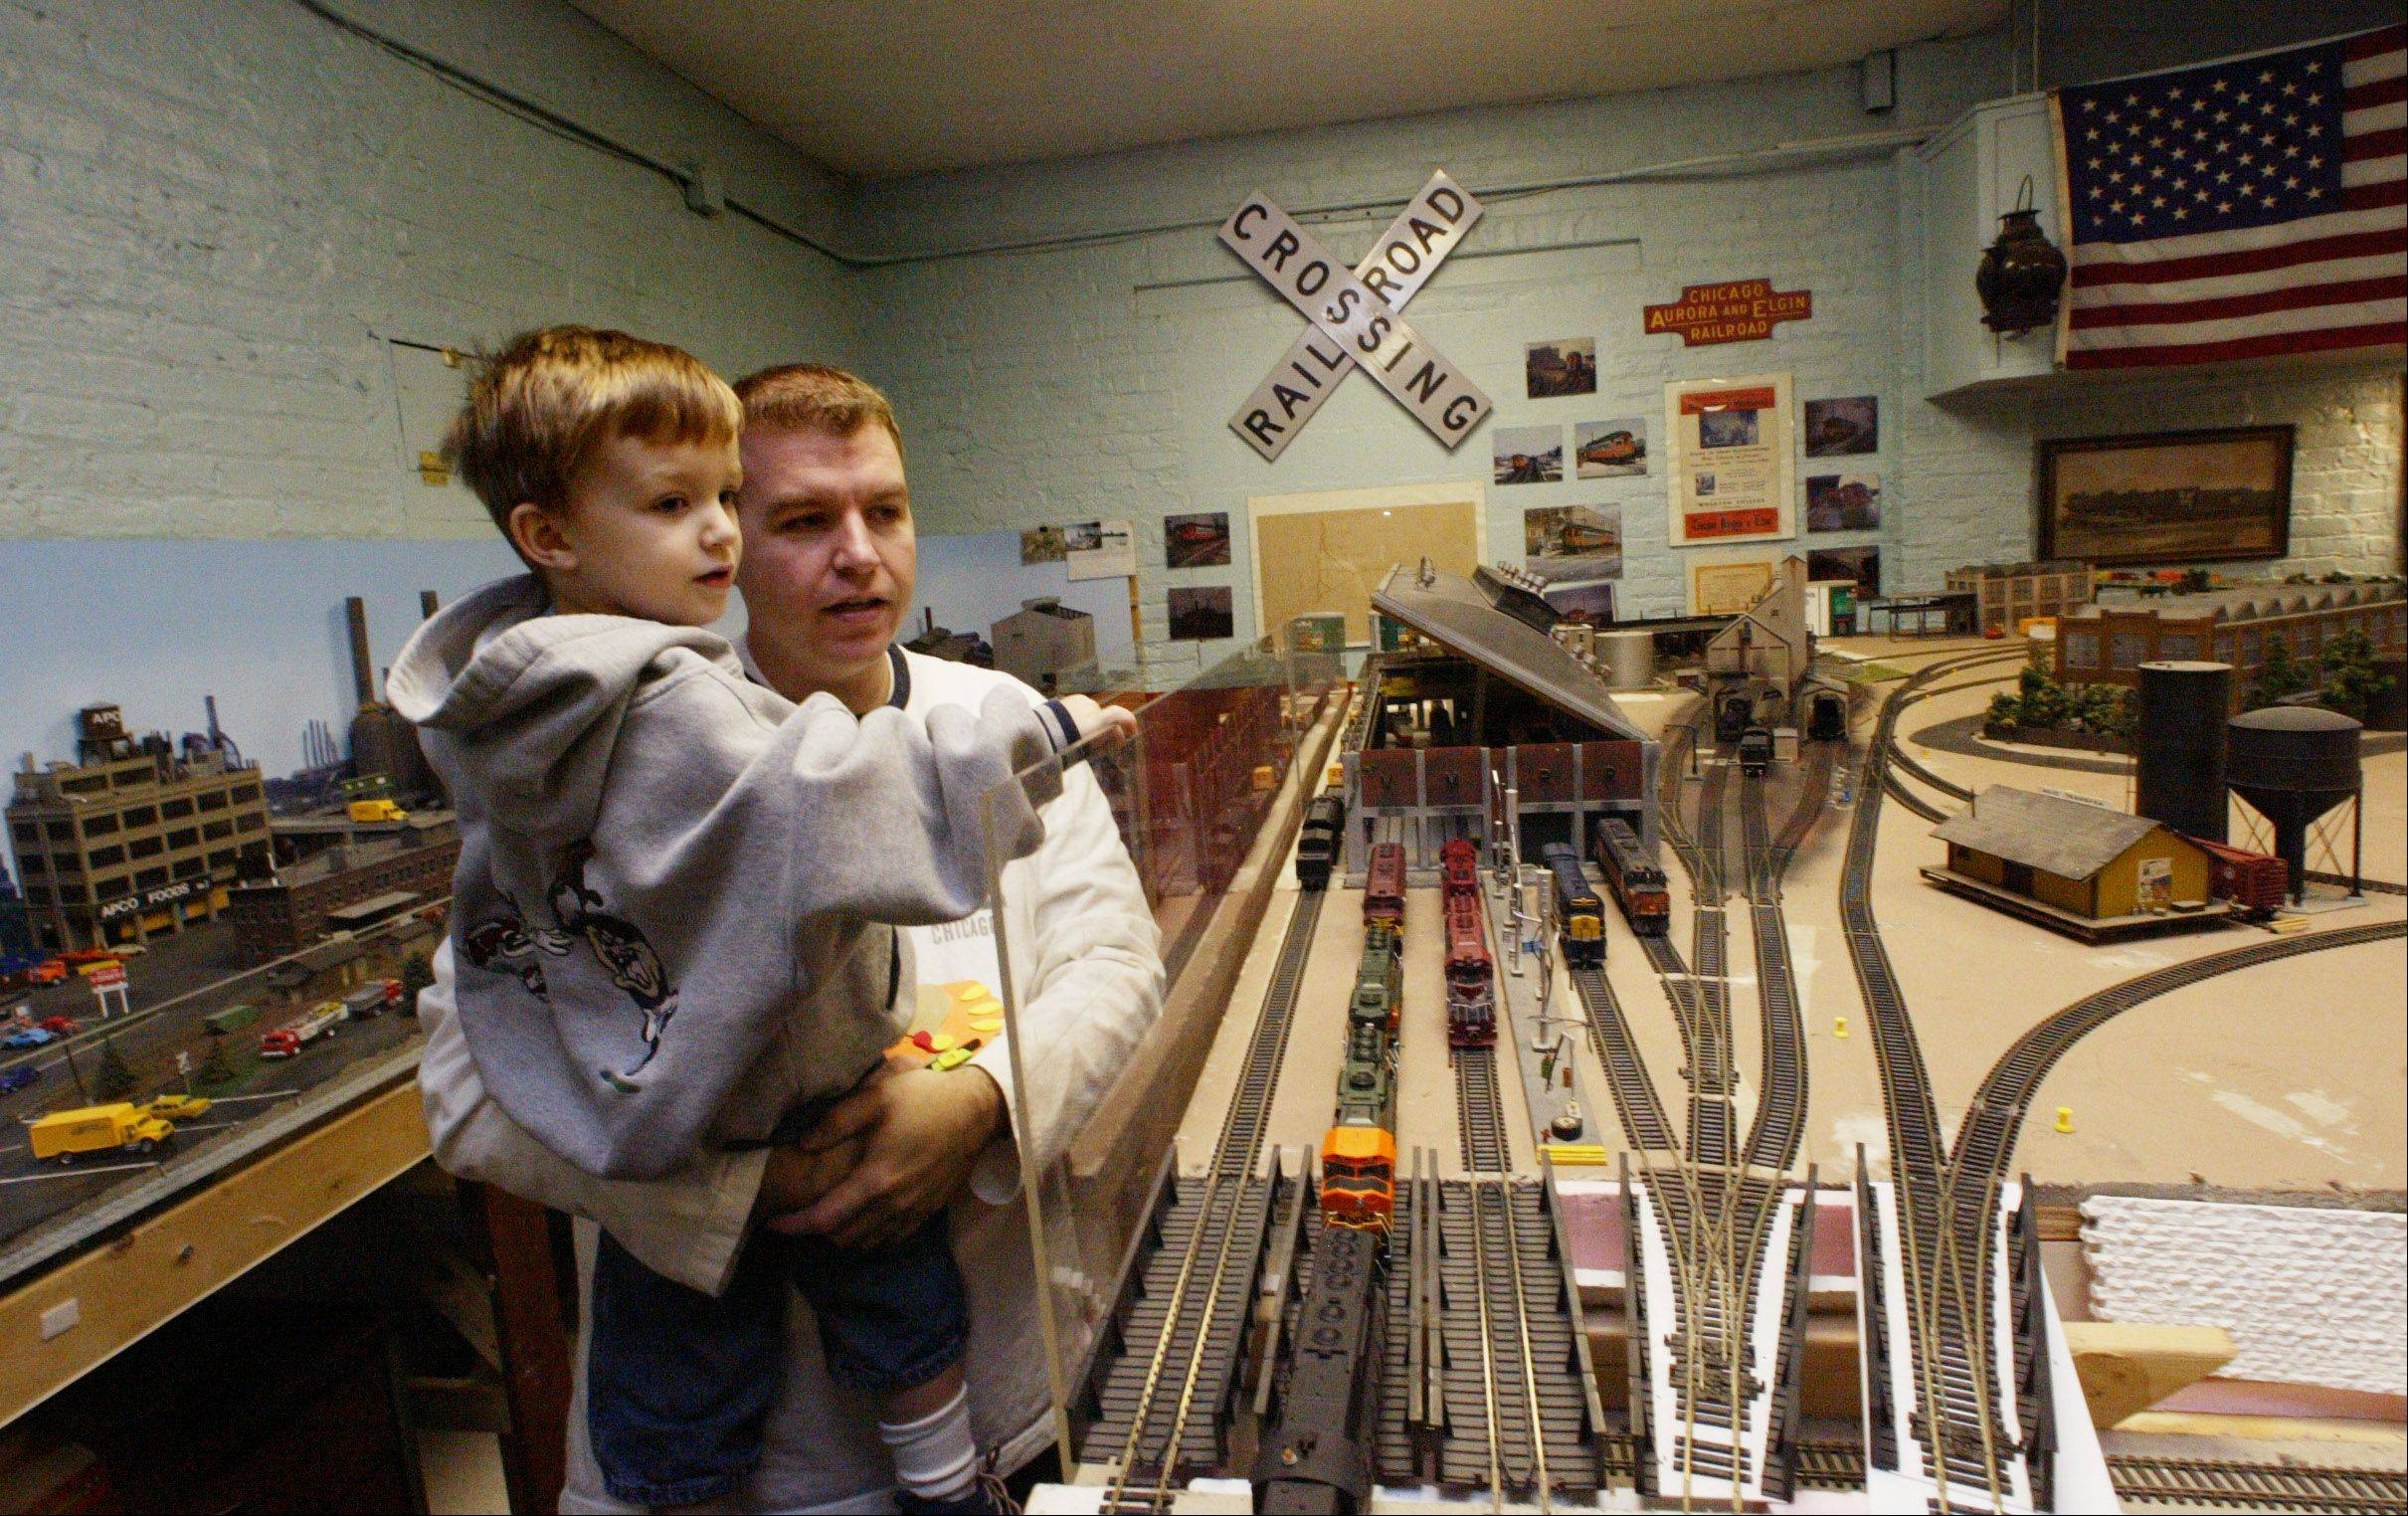 Train enthusiasts of all ages are invited to check out the layouts this weekend at the Valley Model Railroad Club's open house in South Elgin.